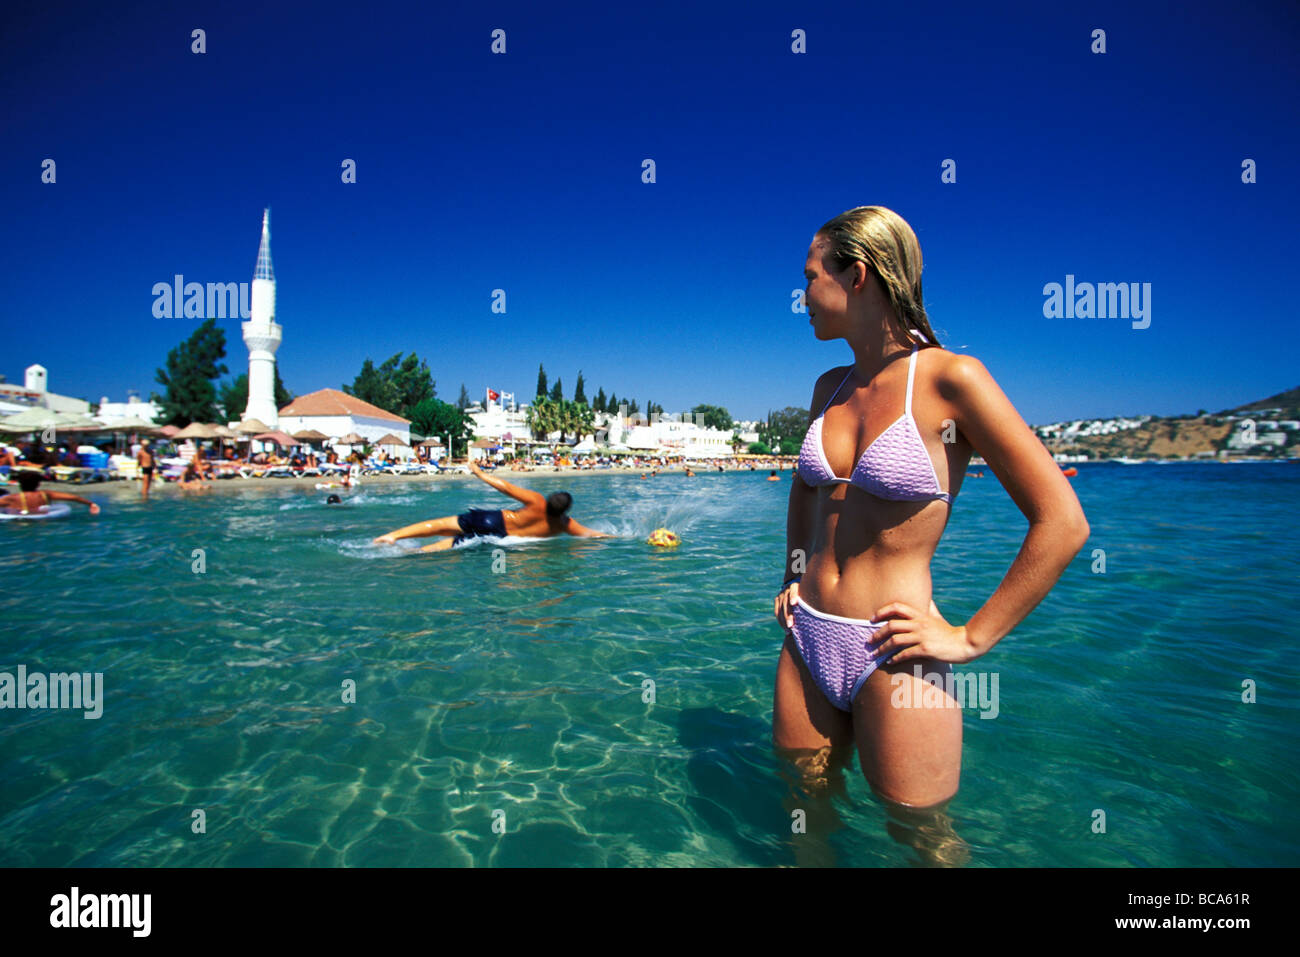 bodrum single girls Warnings and dangers for istanbul for women's safety all things considered women's safety in istanbul and other warnings and dangers virtual tourist.